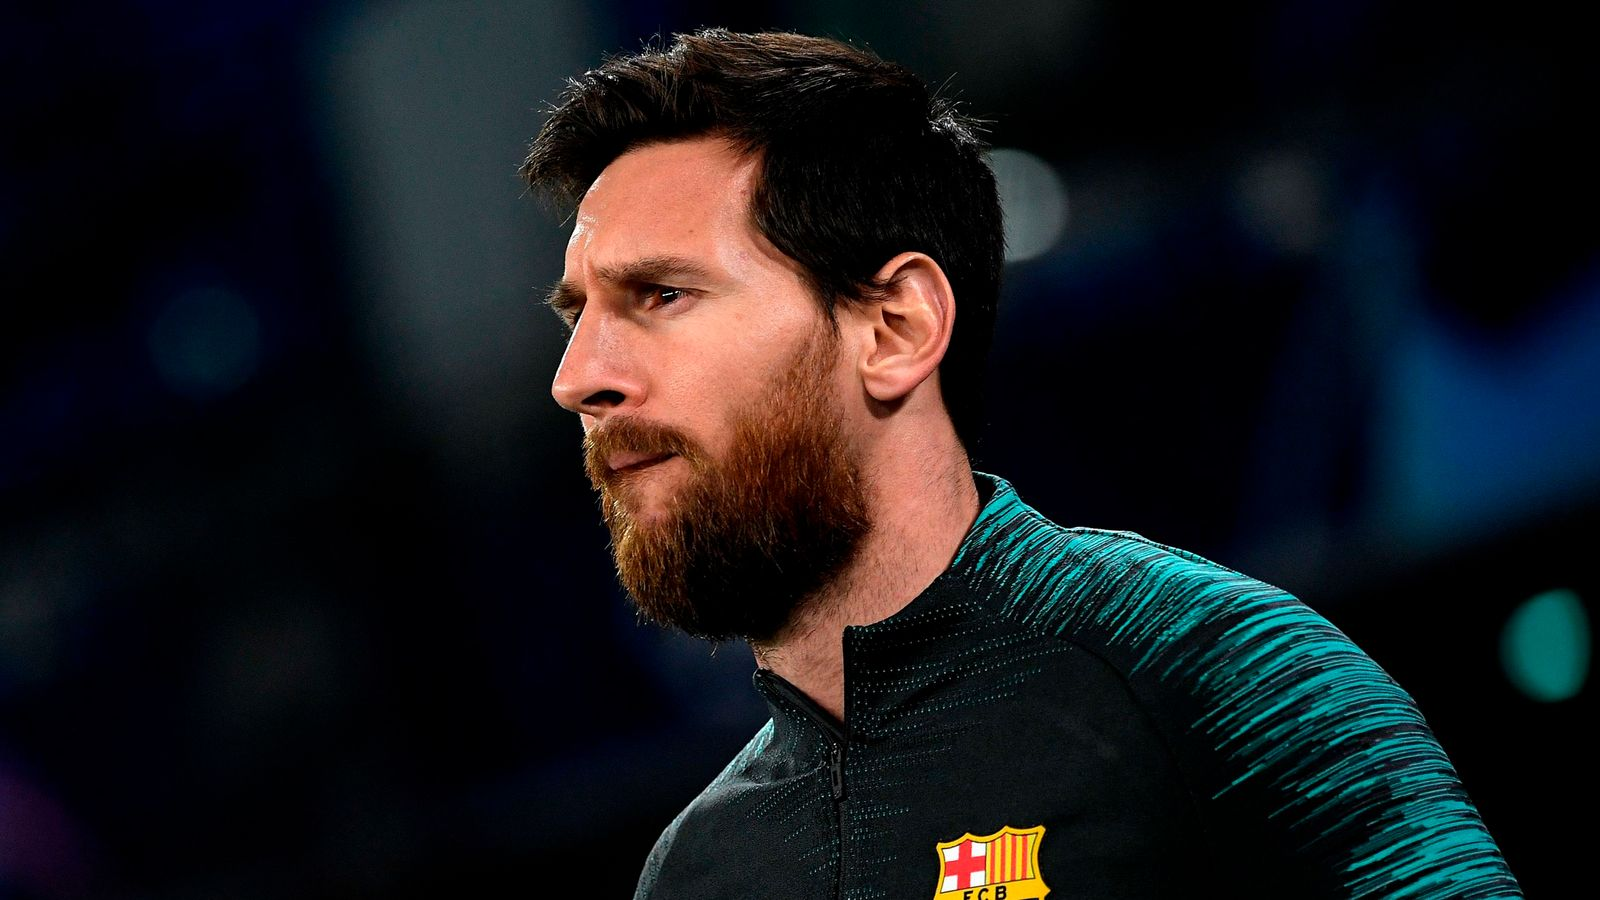 Lionel Messi: Barcelona forward misses training amid Manchester City interest - Sky Sports